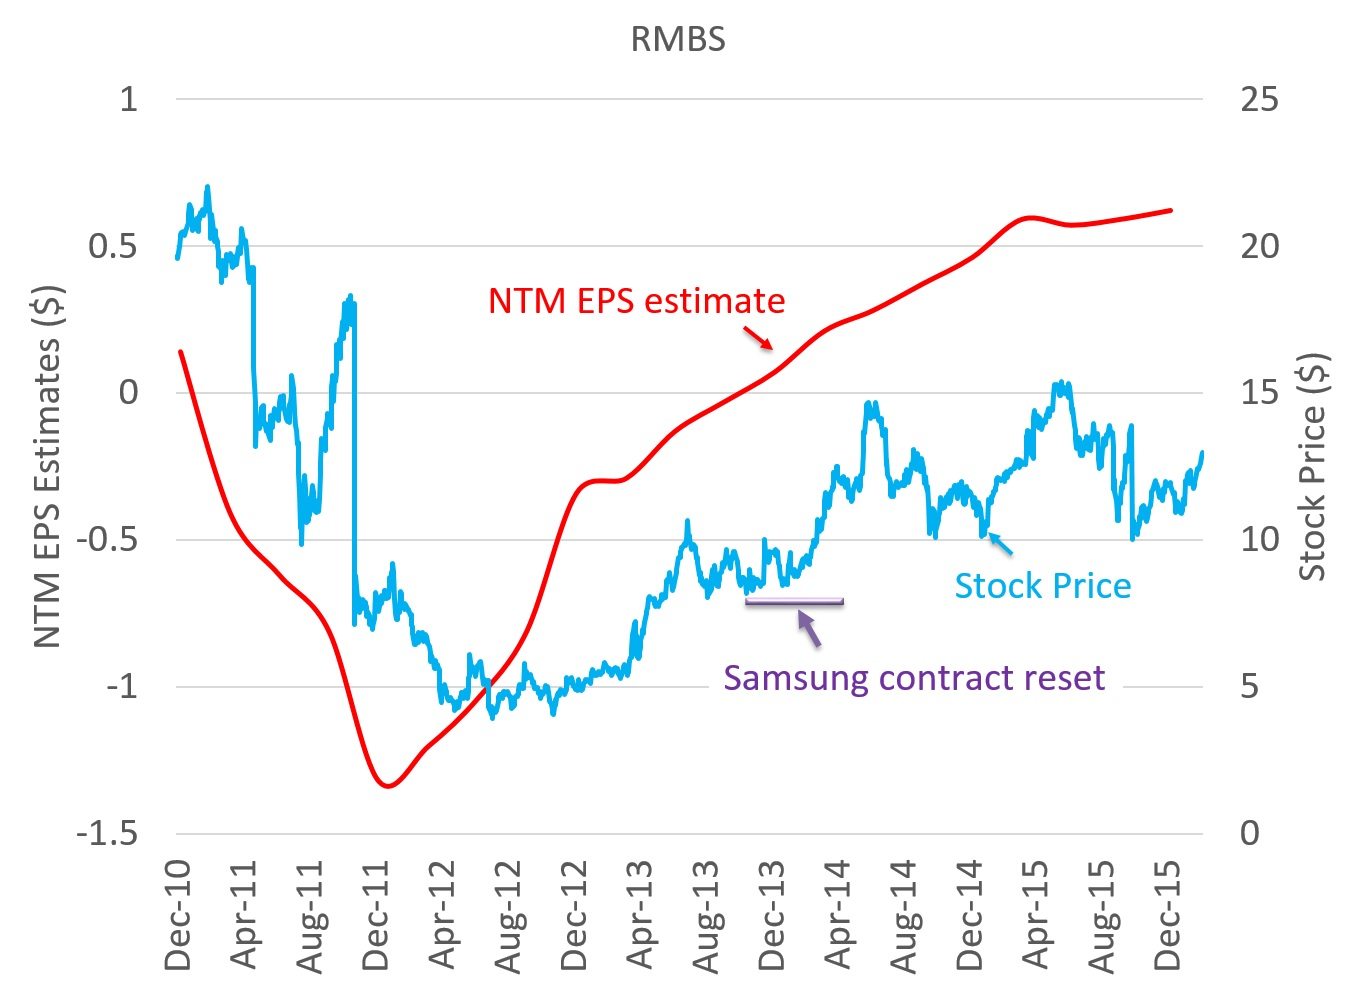 RMBS stock chart